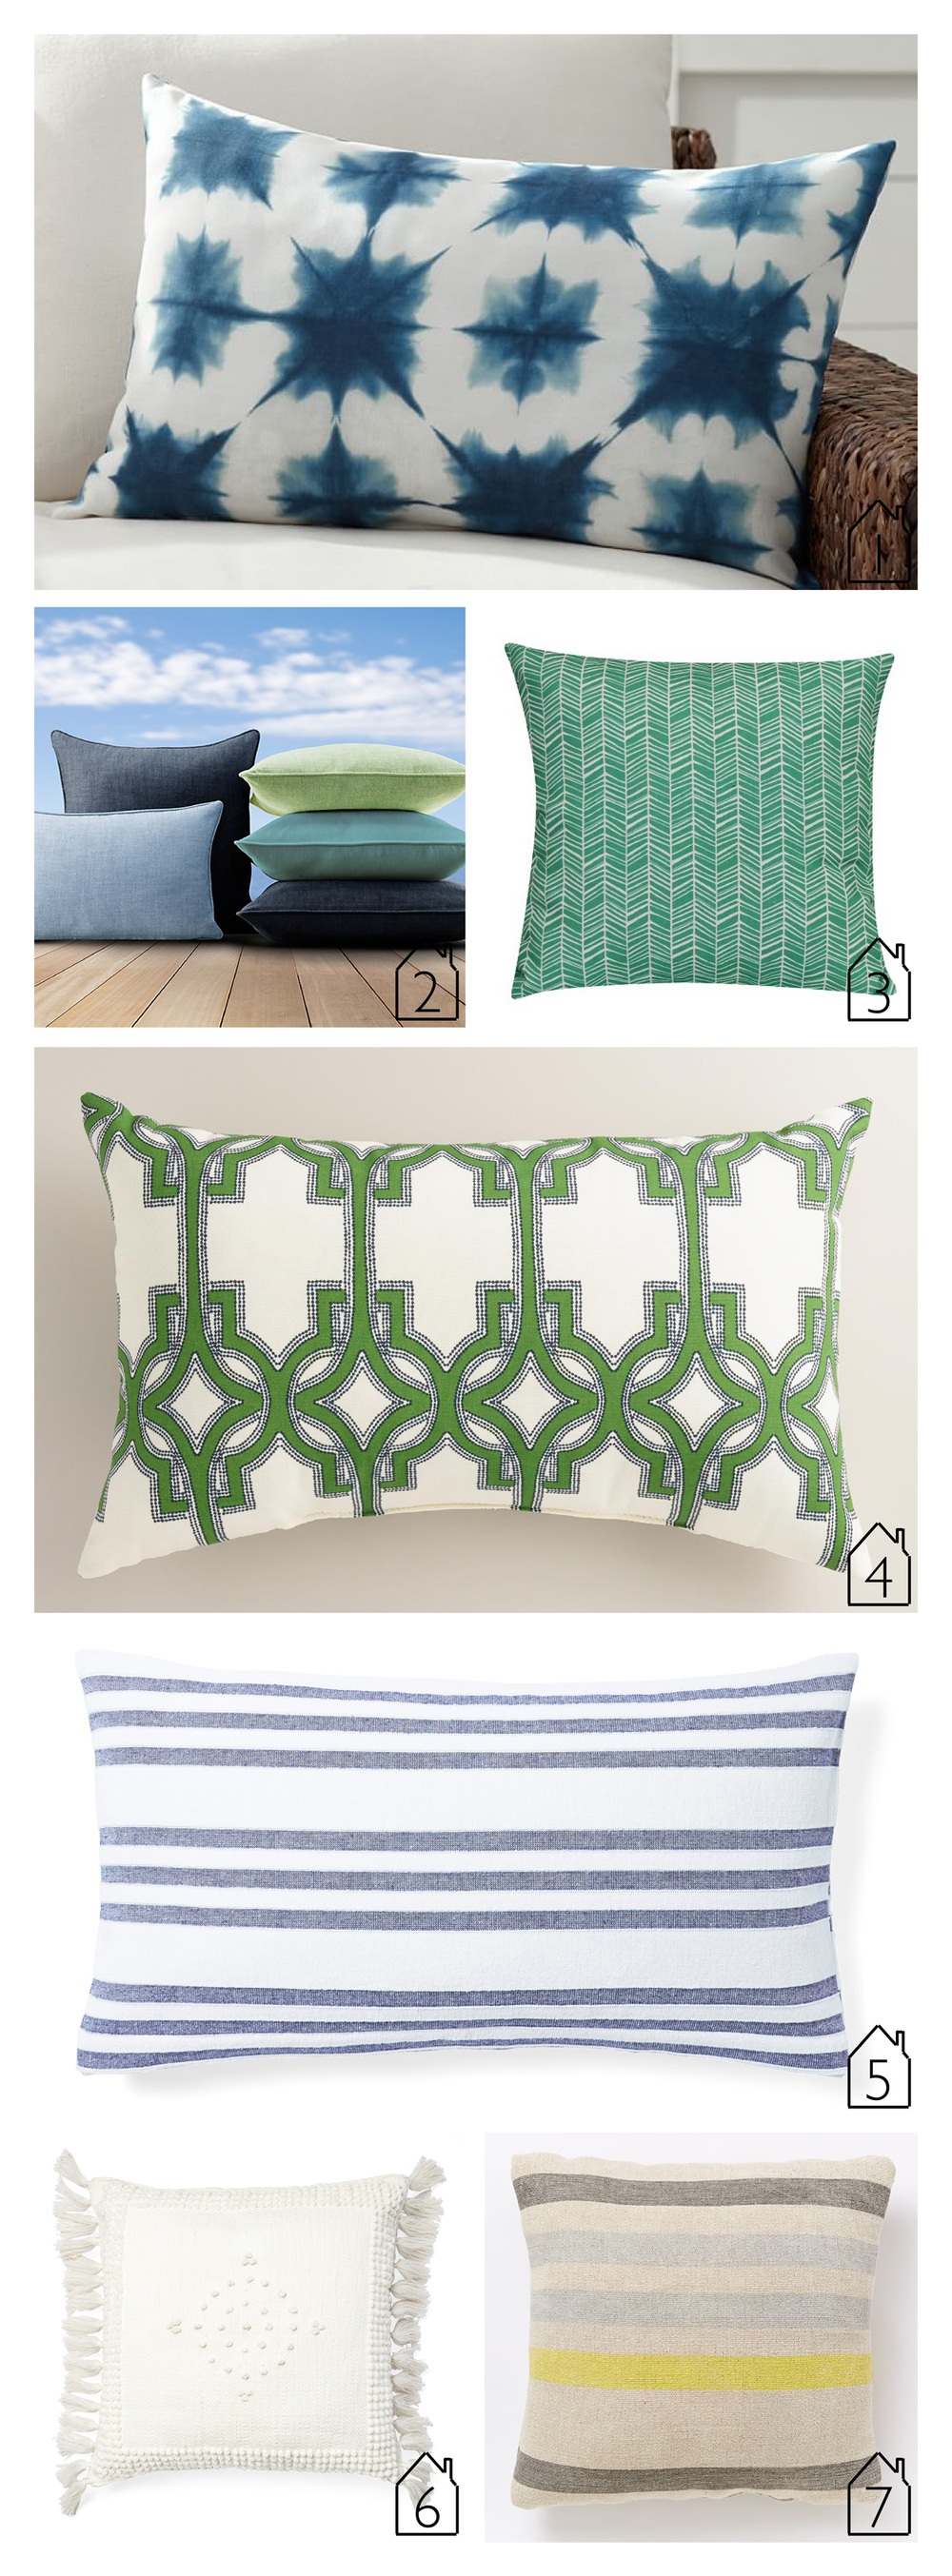 1.  zuma starburst indoor/outdoor lumbar pillow  by Pottery Barn  2.  perennials textured linen weave pillow cover  by RH  3.  teal herringbone outdoor pillow  by Target  4.  green alonso geo outdoor lumbar pillow  by World Market  5.  pinstripe fouta pillow cover  by Serena & Lily  6.  montecito outdoor pillow cover  by Serena & Lily  7.  indoor/outdoor prep stripe pillow - frost gray  by West Elm | THE PLACE HOME